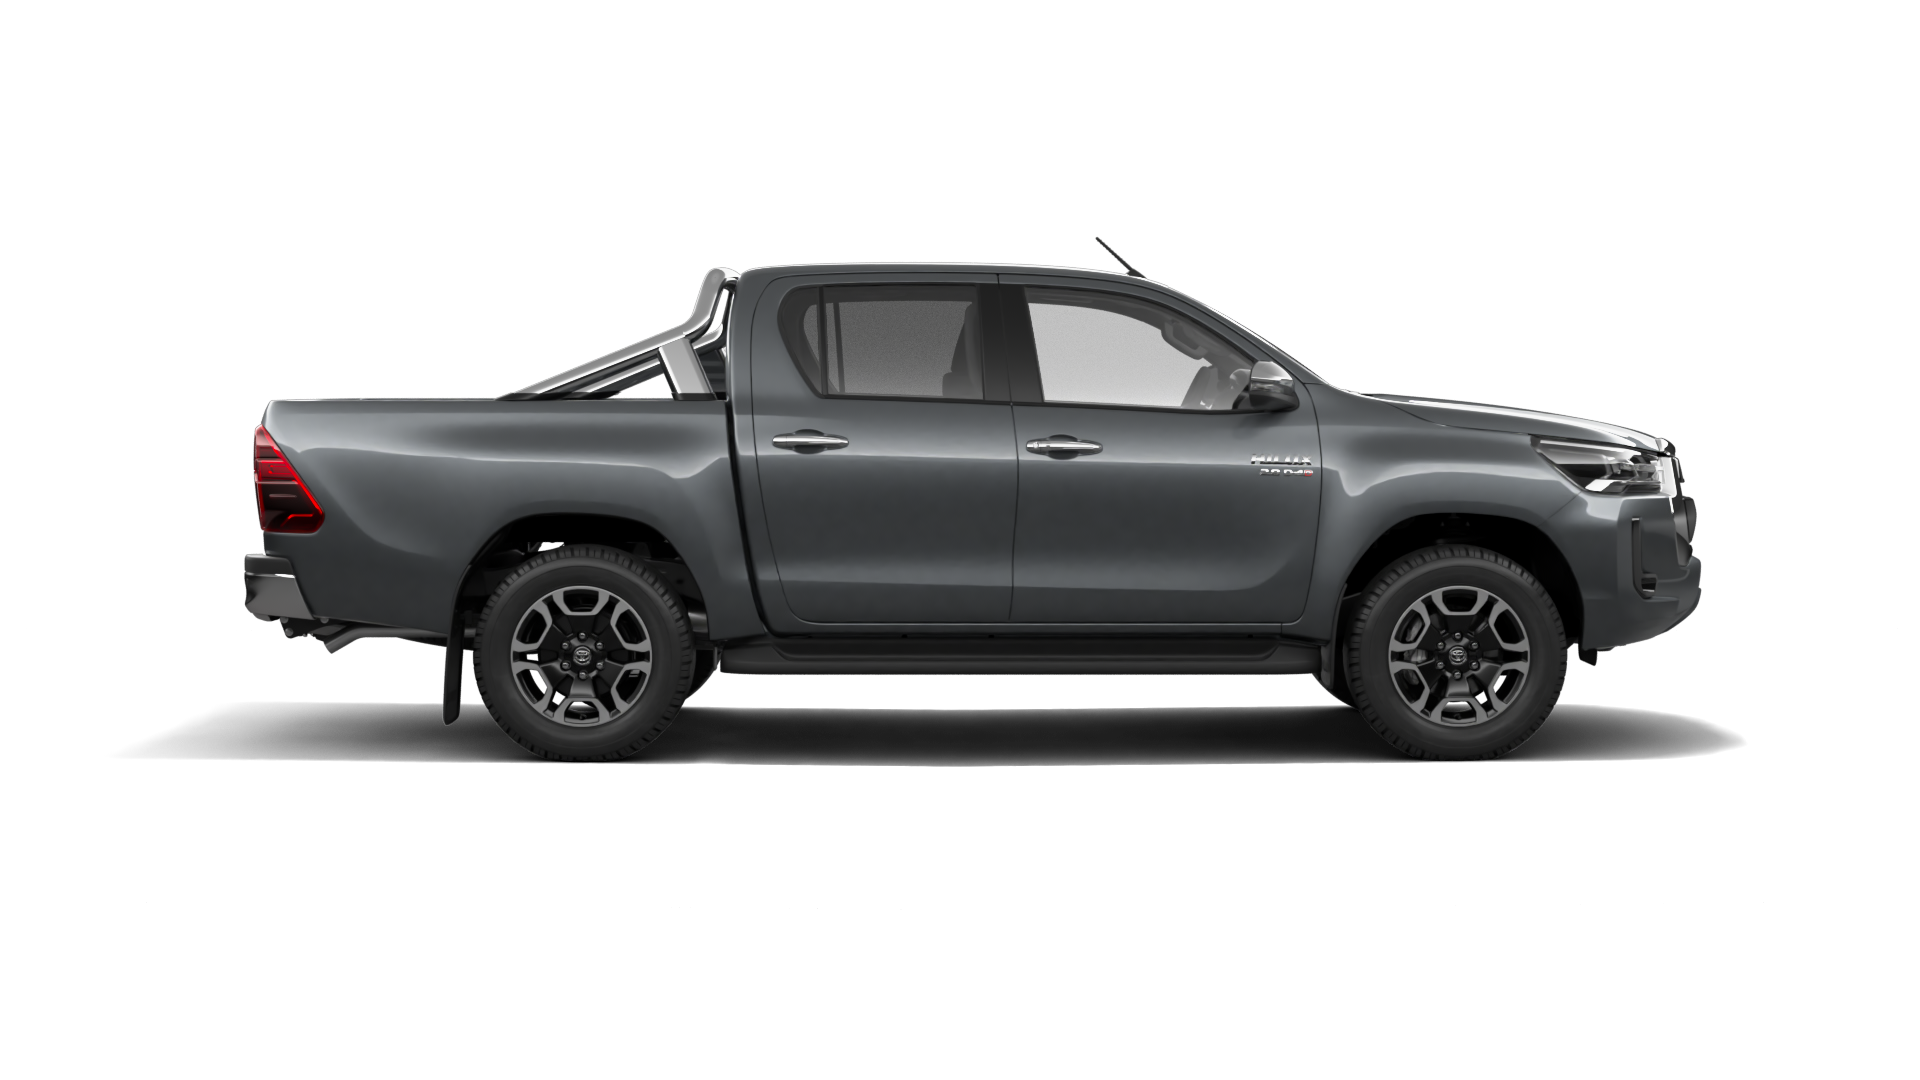 The Toyota HiLux SR & SR5 4x4 is available now at Sunshine Toyota on the Sunshine Coast! Book a test drive today!